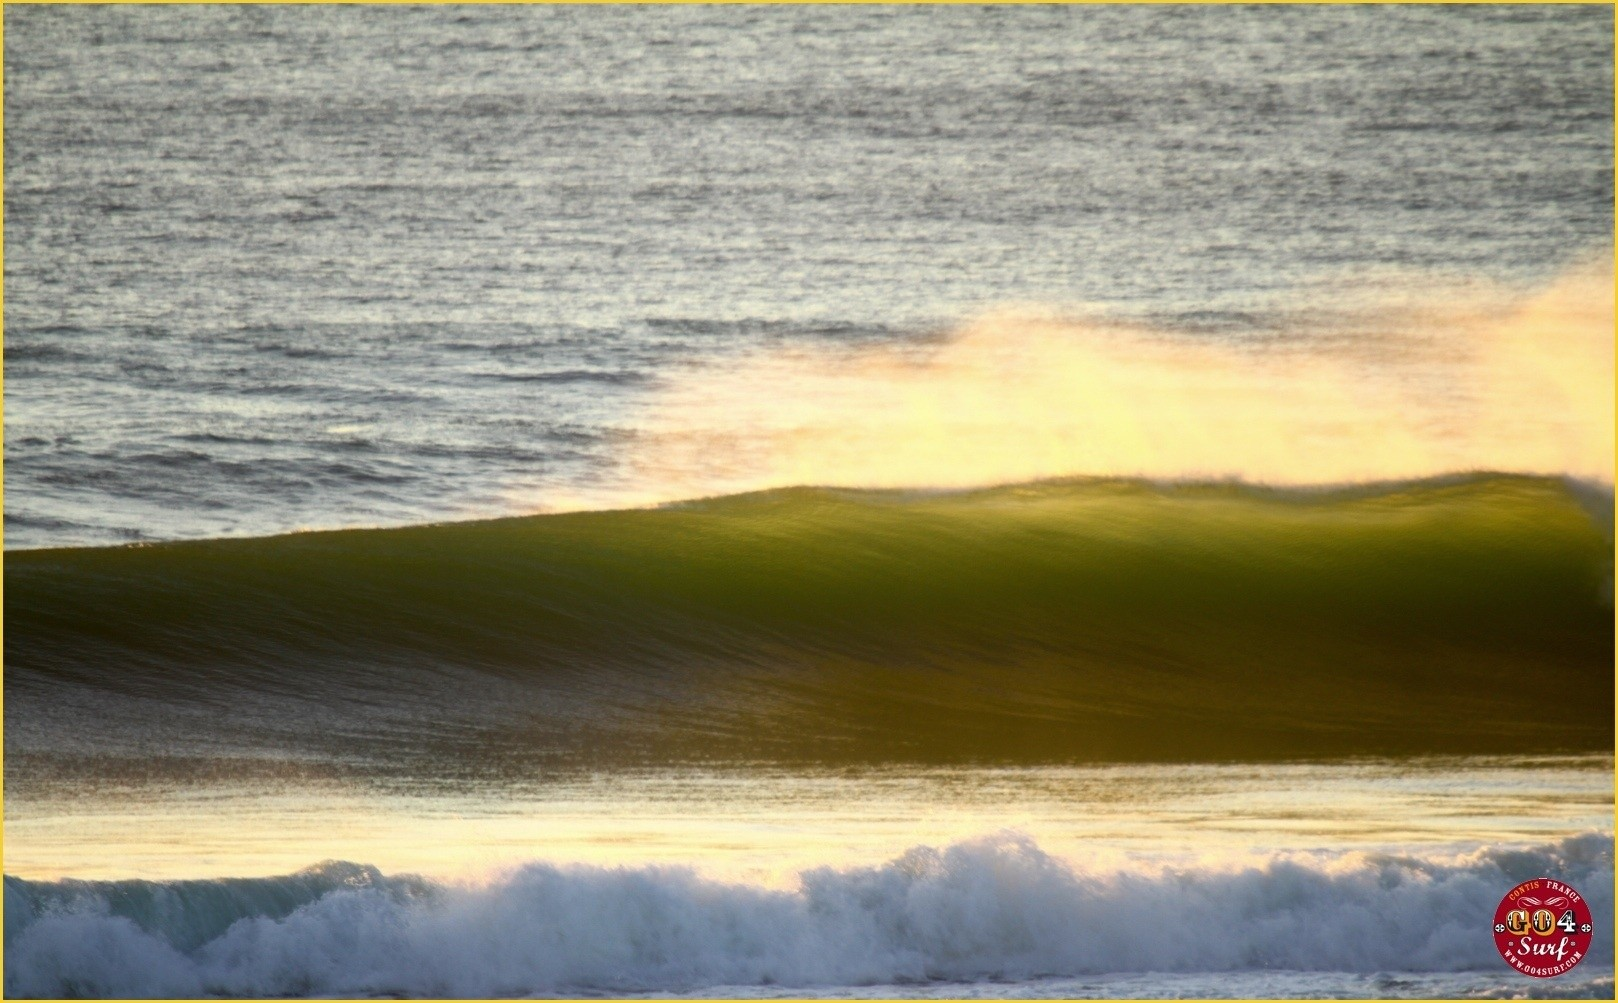 Alain Goffaux's photo of Contis-Plage